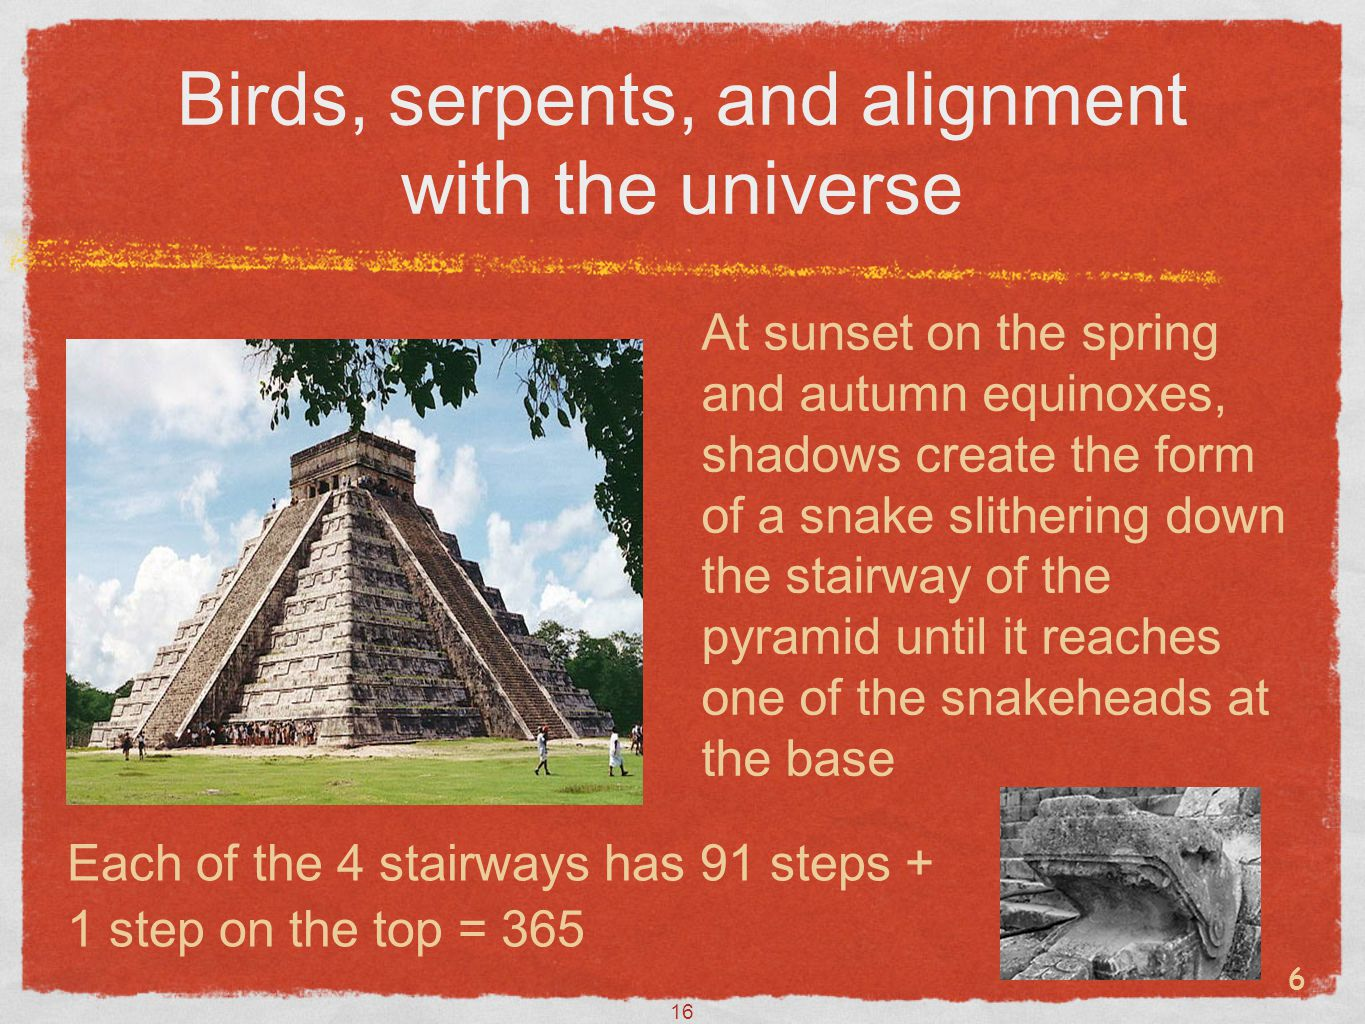 Birds, serpents, and alignment with the universe